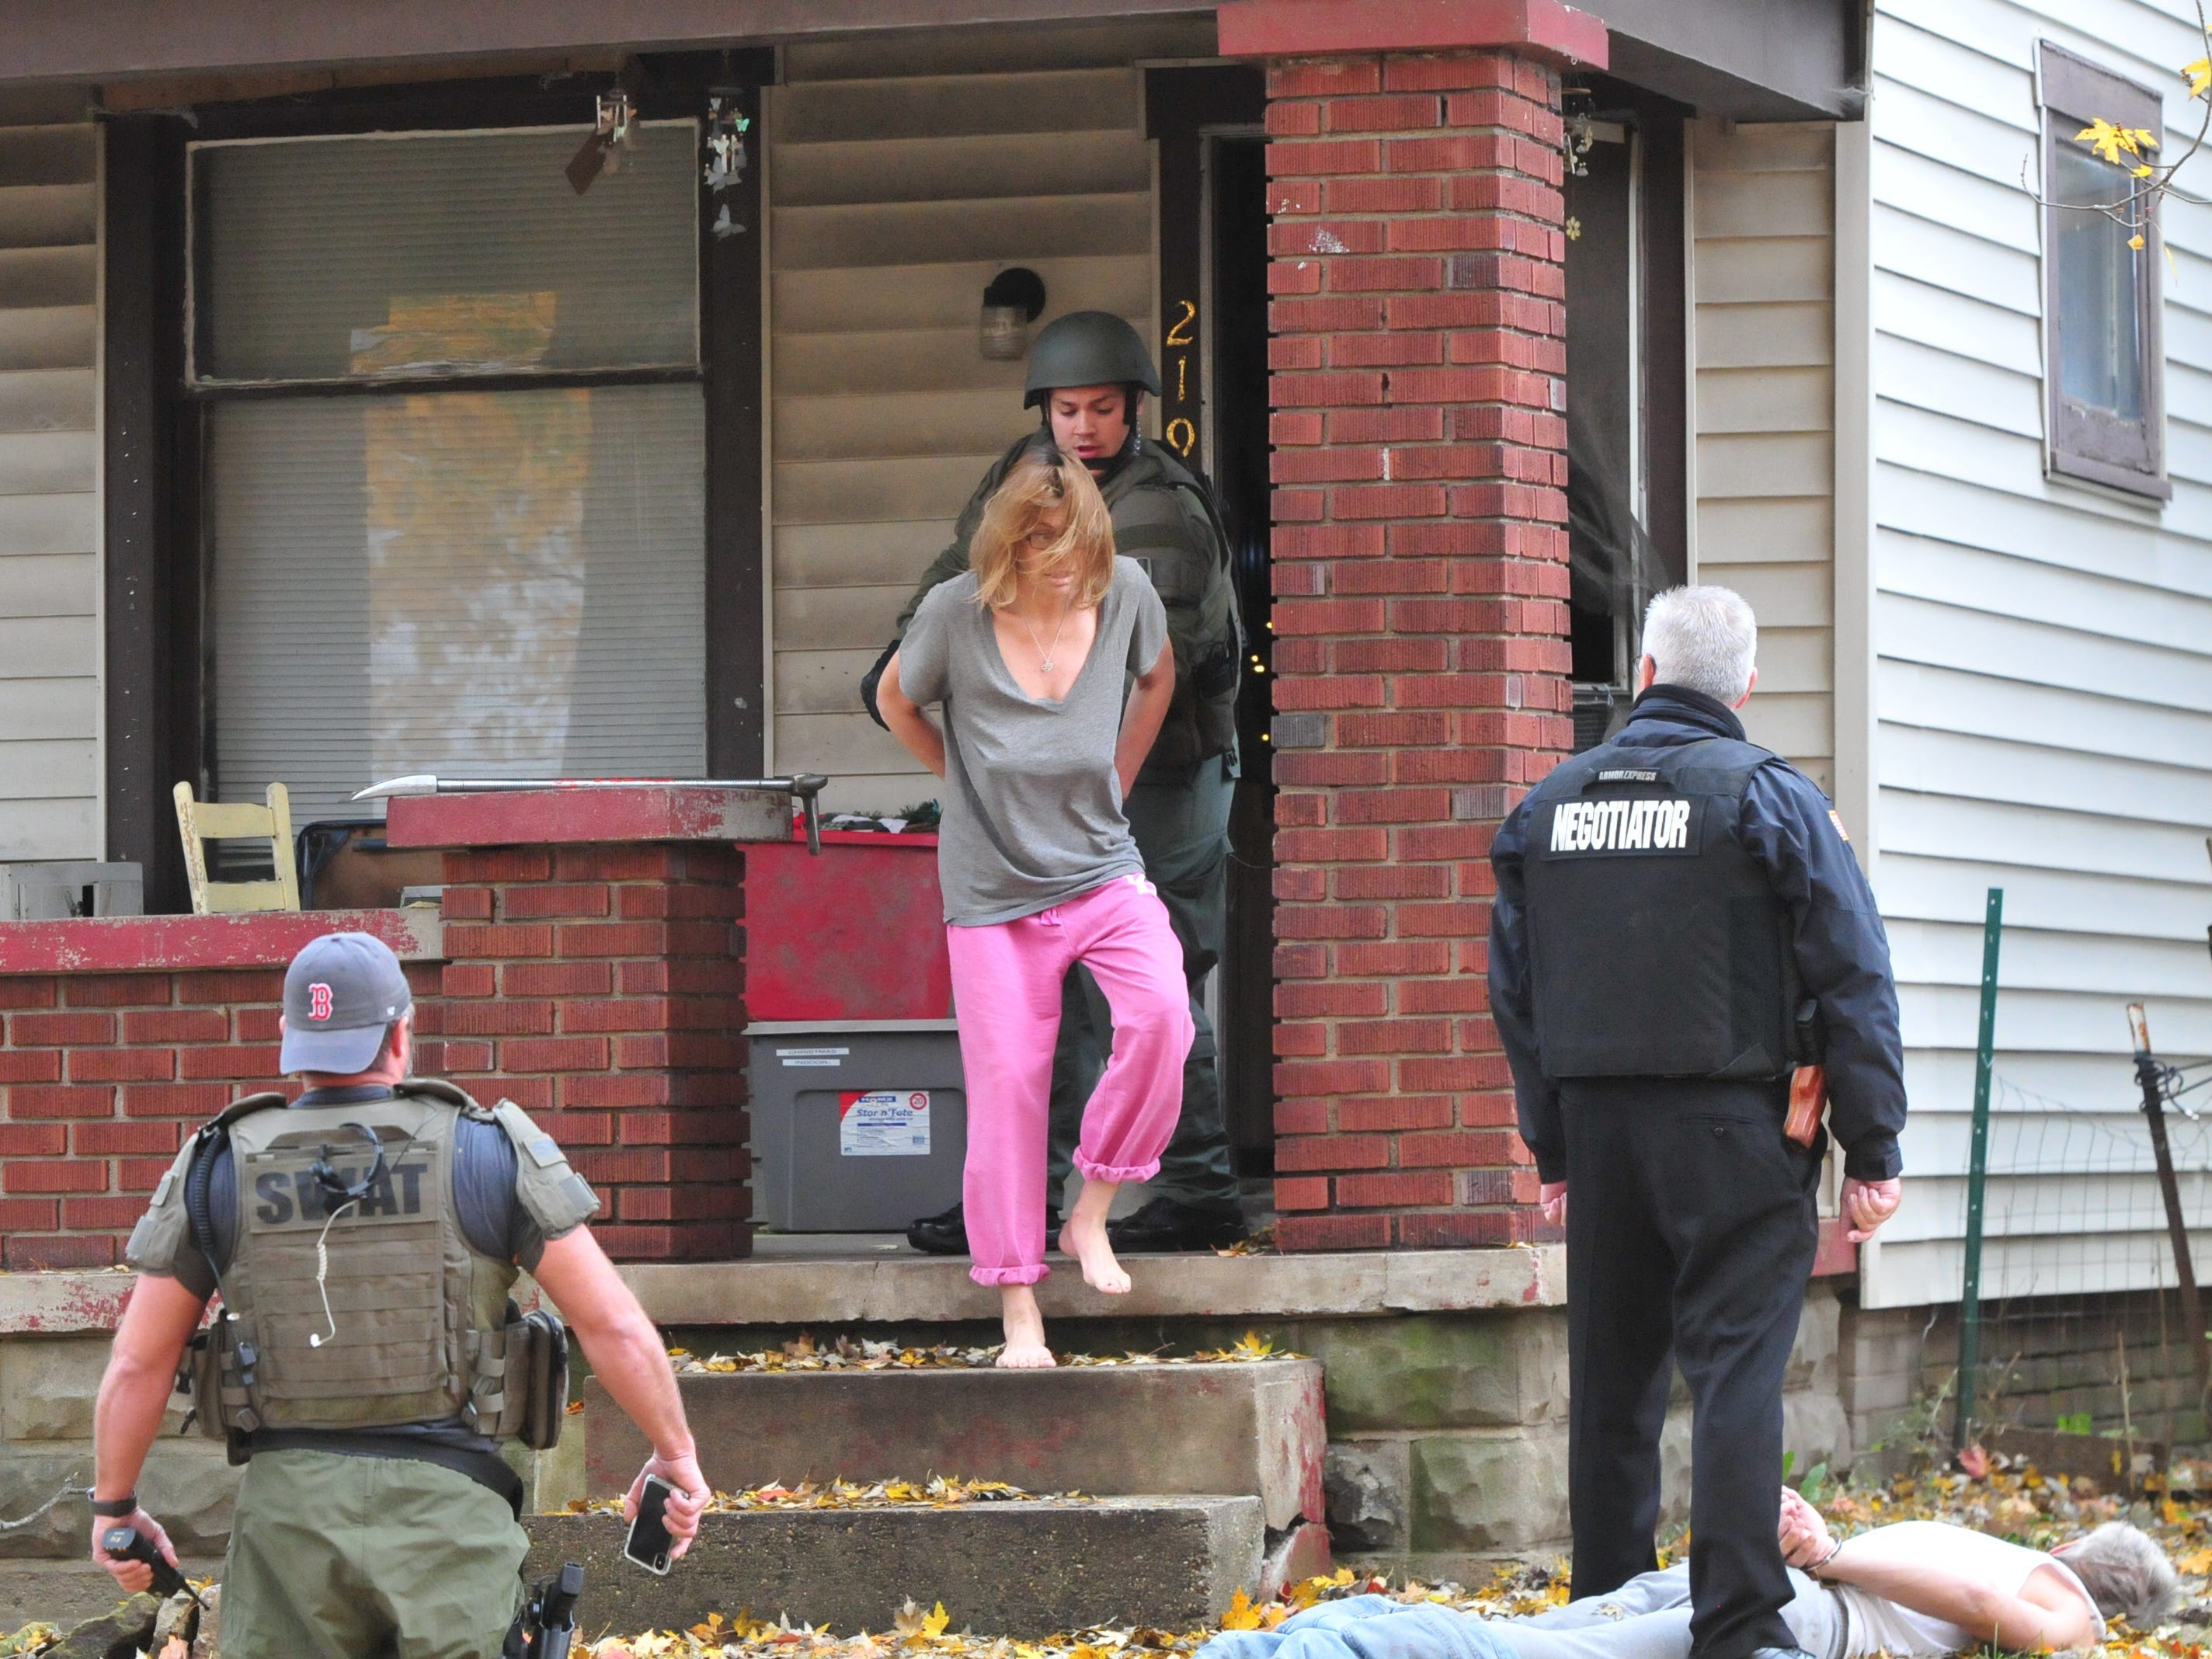 Lorri Davis is led from 219 N. 16th St. during a SWAT raid Monday.